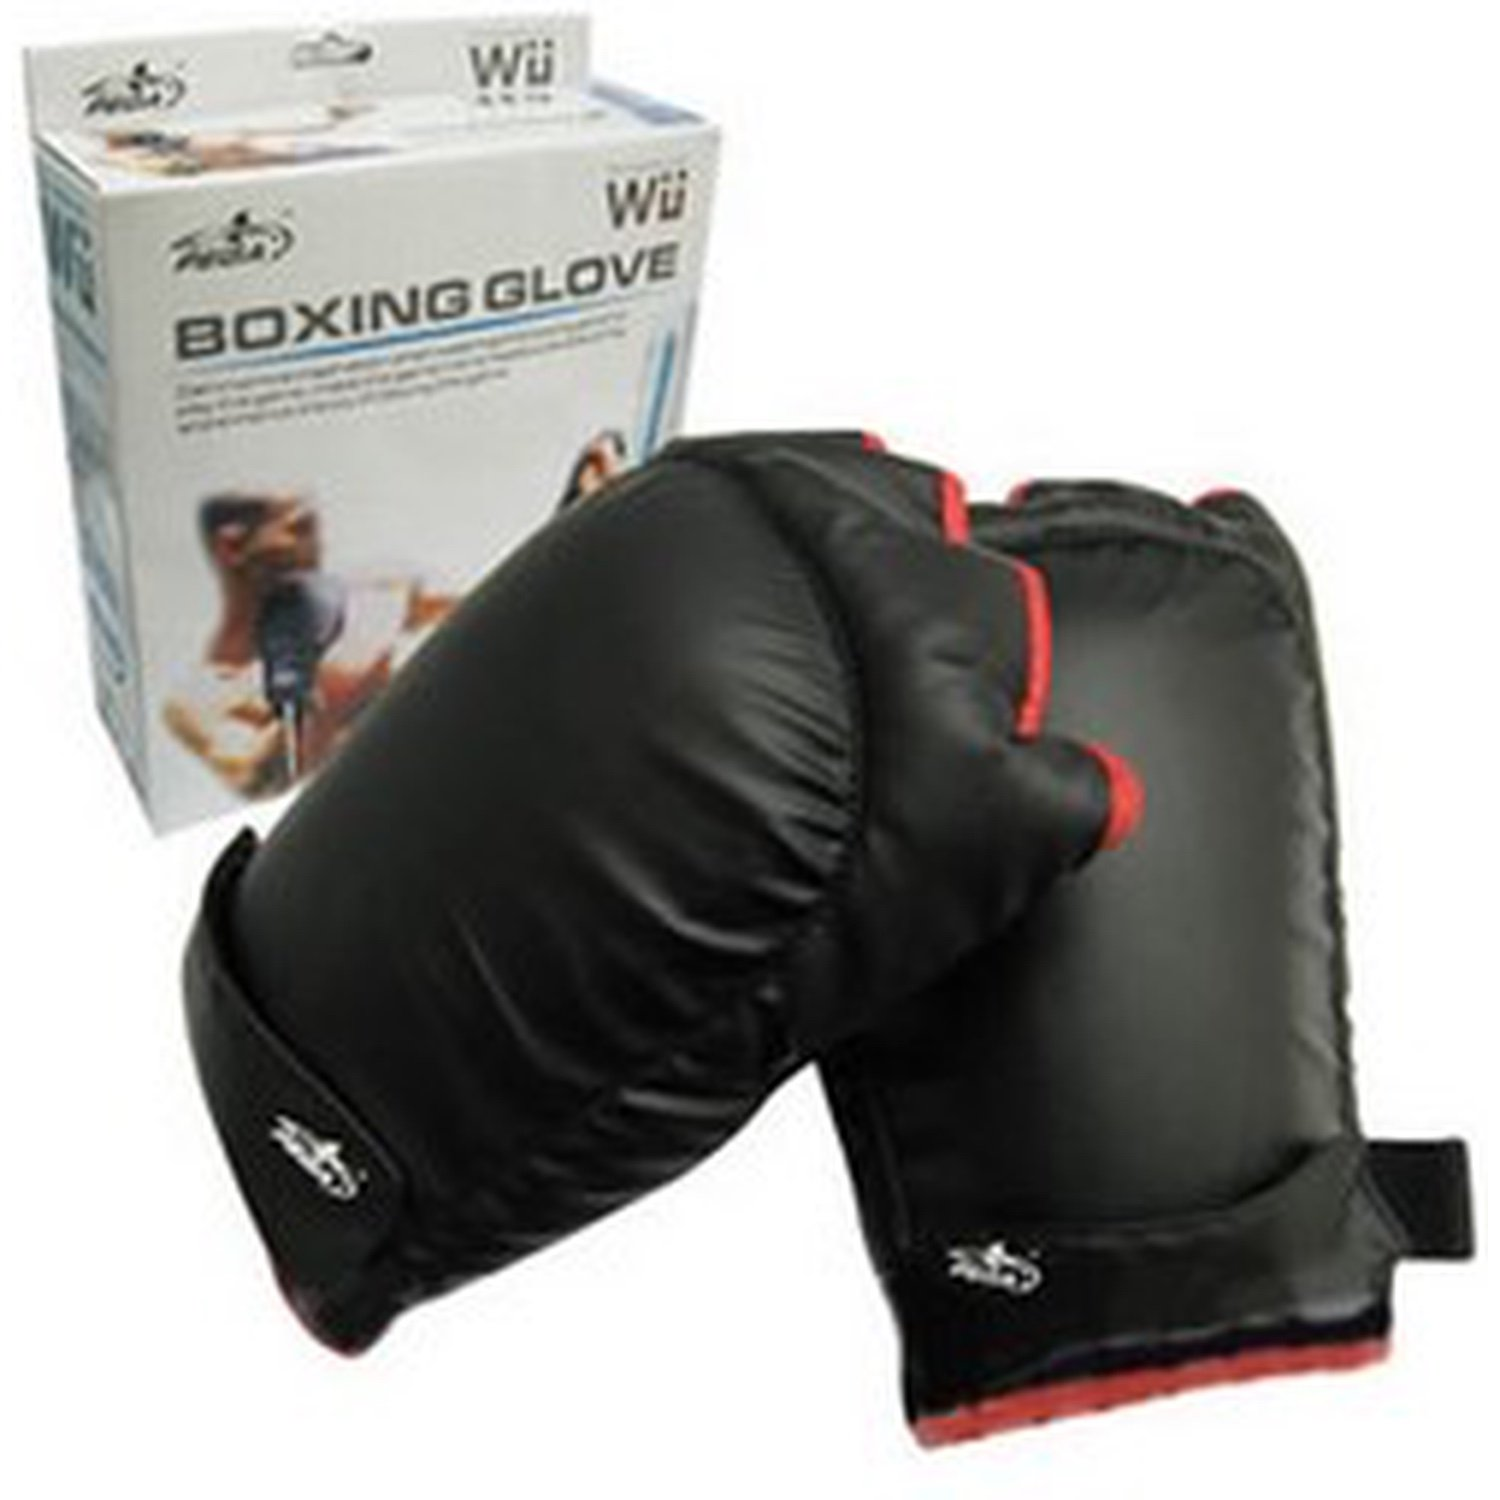 Wii Boxing Glove Kit ultimate band wii